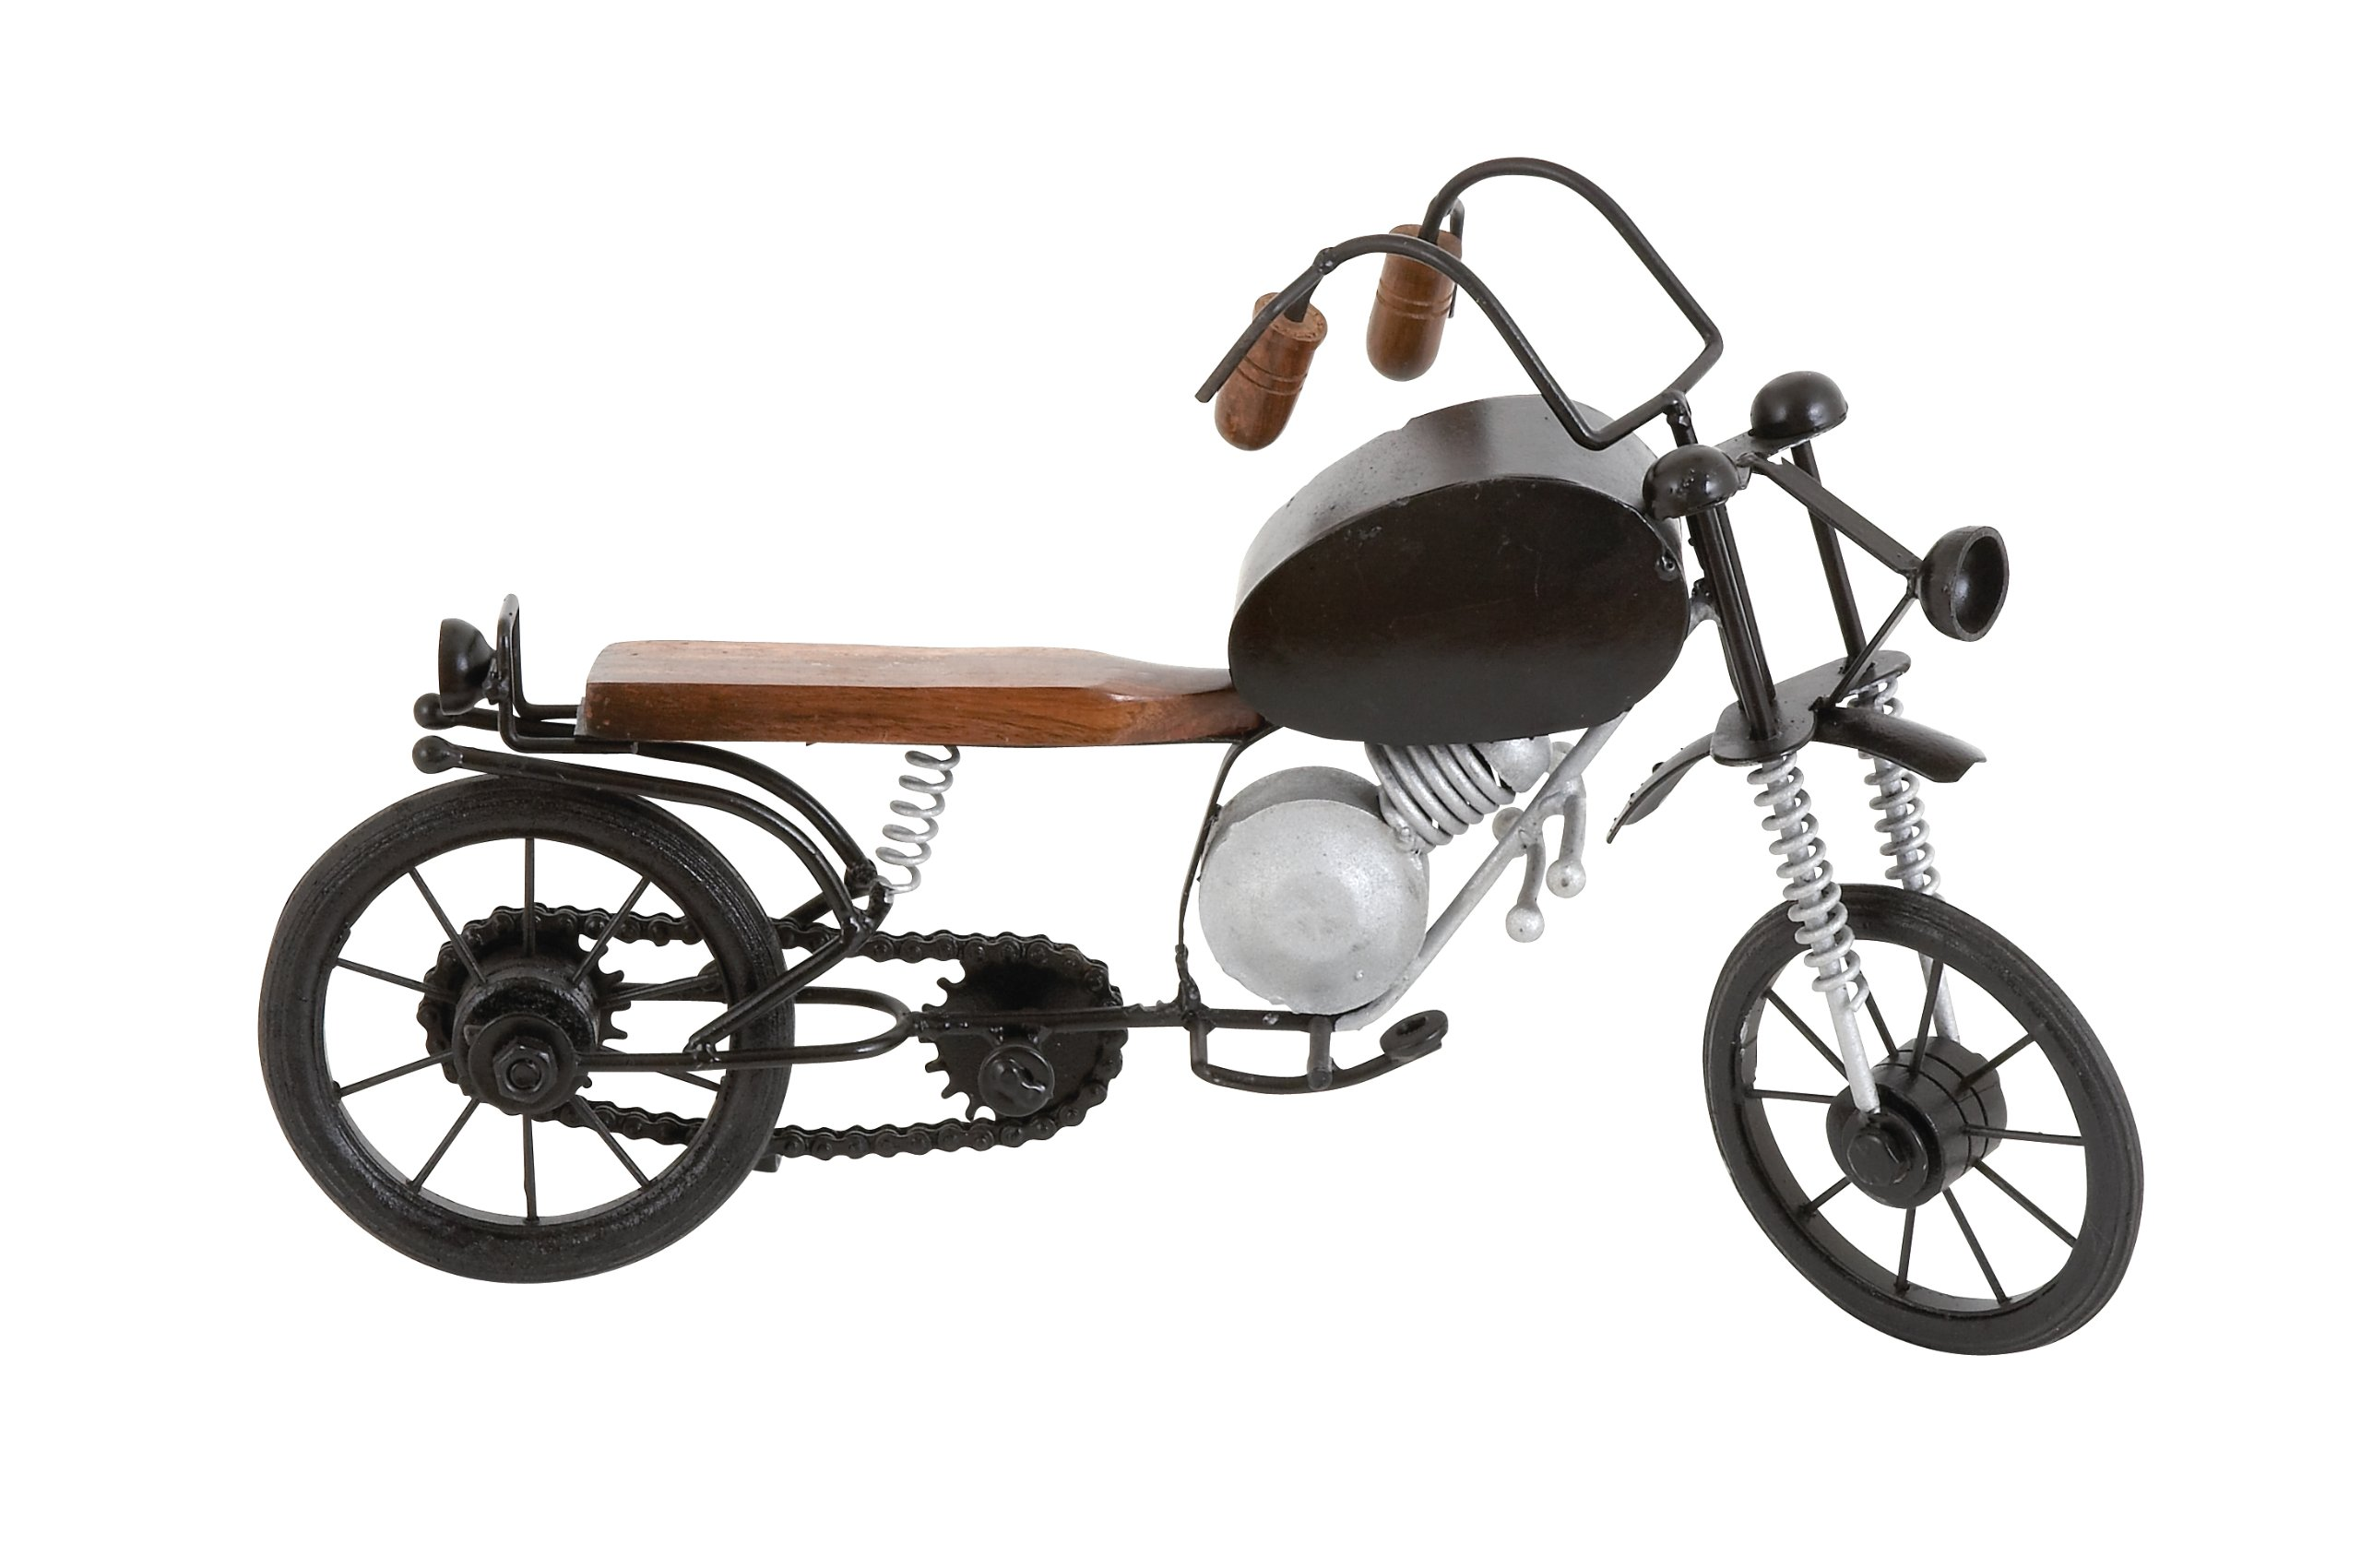 Deco 79 Metal Wood Motorcycle, 15 by 9-Inch